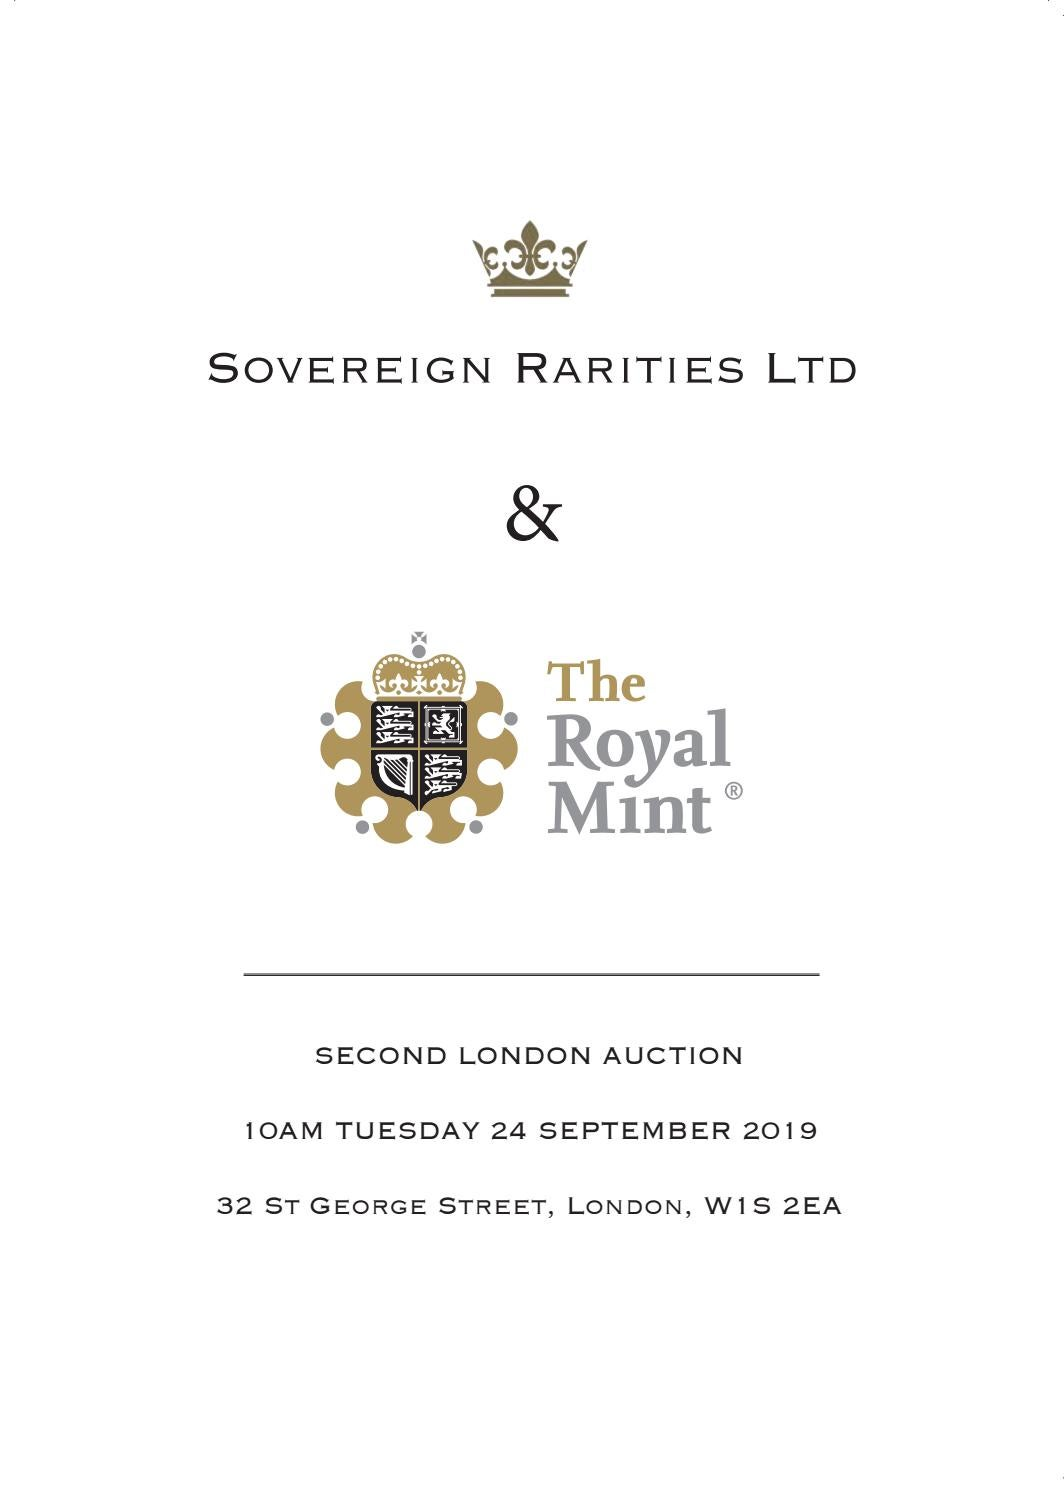 2019 Auction Catalogue The Royal Mint By The Royal Mint Issuu One extra 3rd level spell a day will not break anyones game. 2019 auction catalogue the royal mint